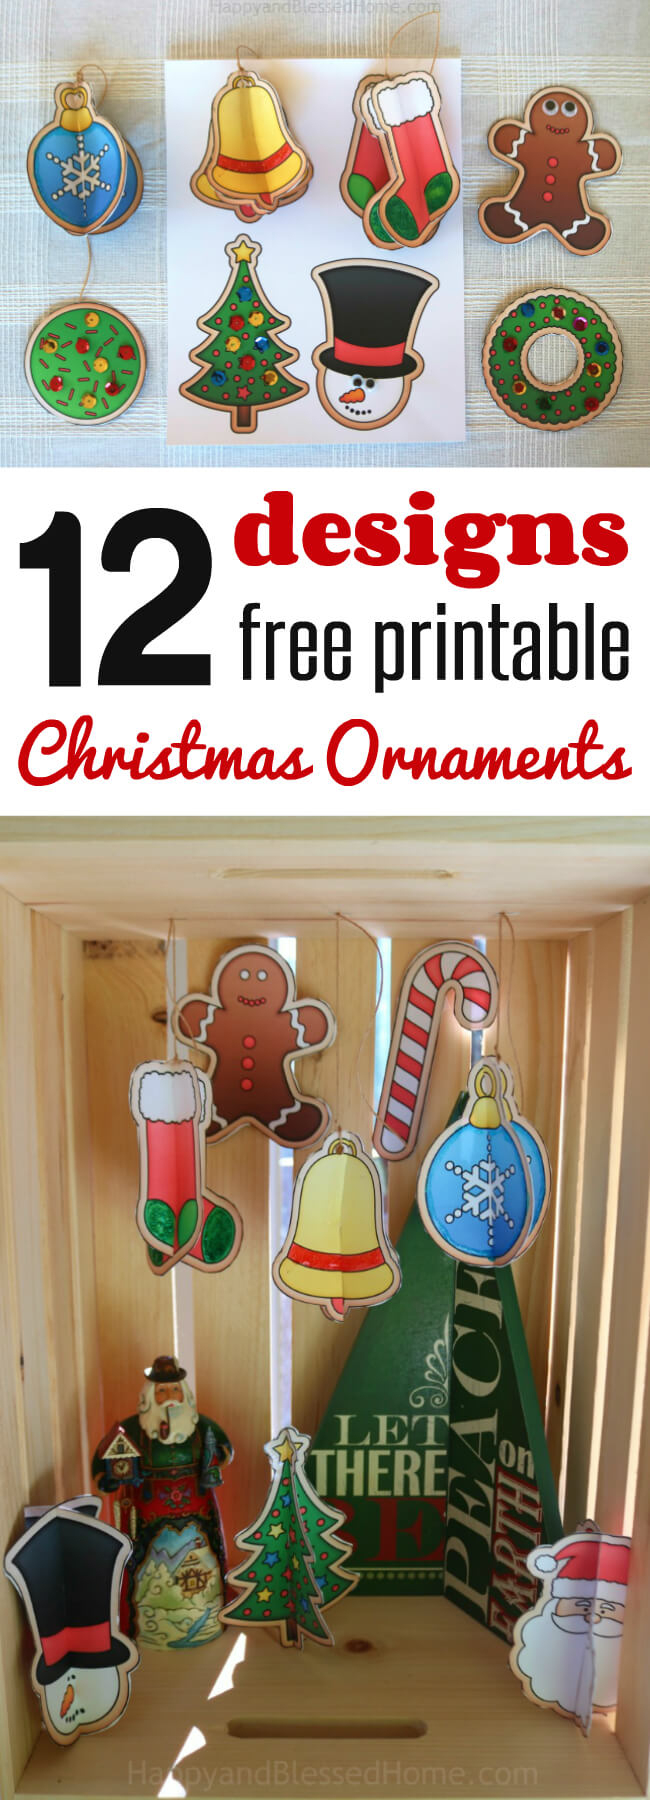 12 Free Christmas Ornaments Printables And A Christmas Craft - Free Printable Christmas Ornament Crafts